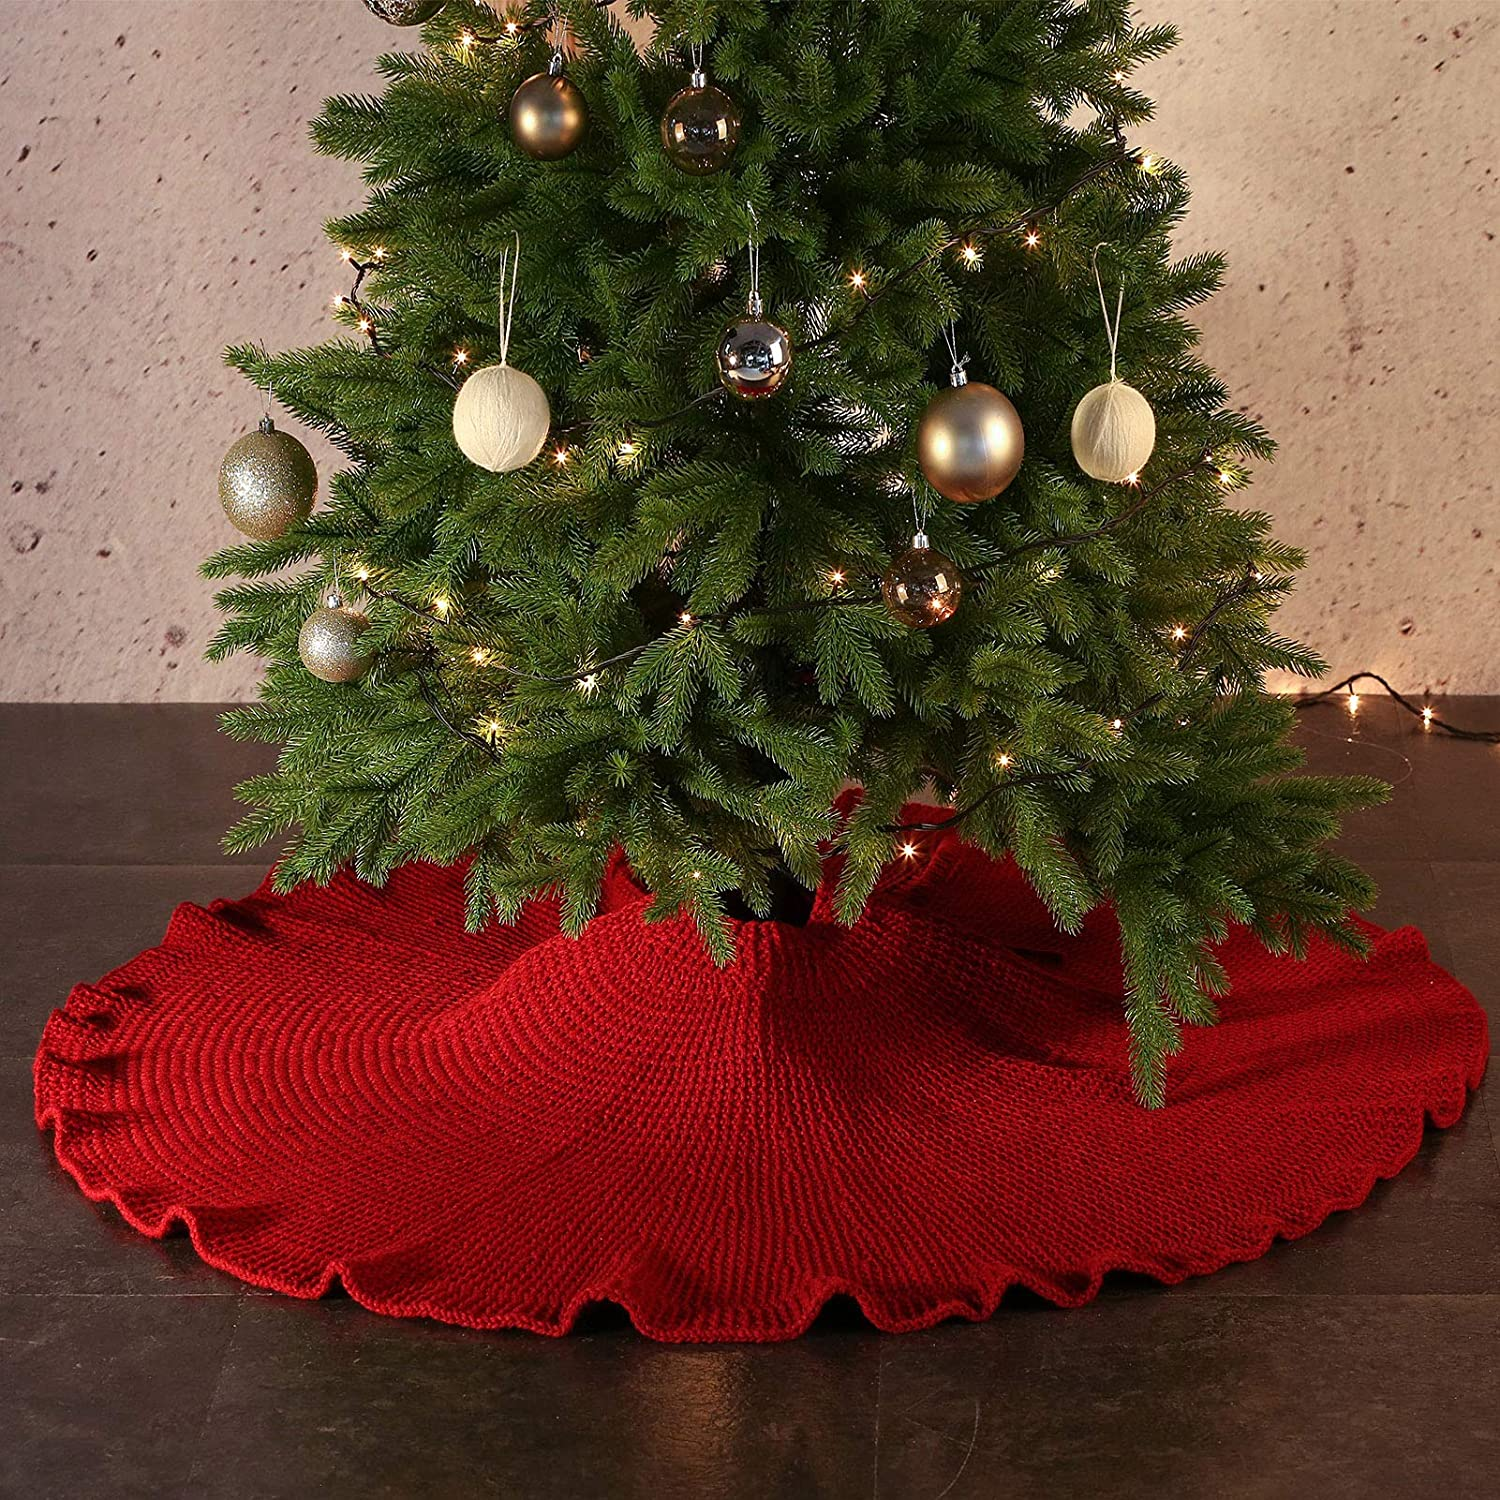 AOFEITE Ruffled Christmas Tree Skirt 48 inches Large, Christmas Tree Decoration 6 to 8ft Tall Trees Suitable, Farmhouse Rustic Festive Xmas Holiday Décor Red